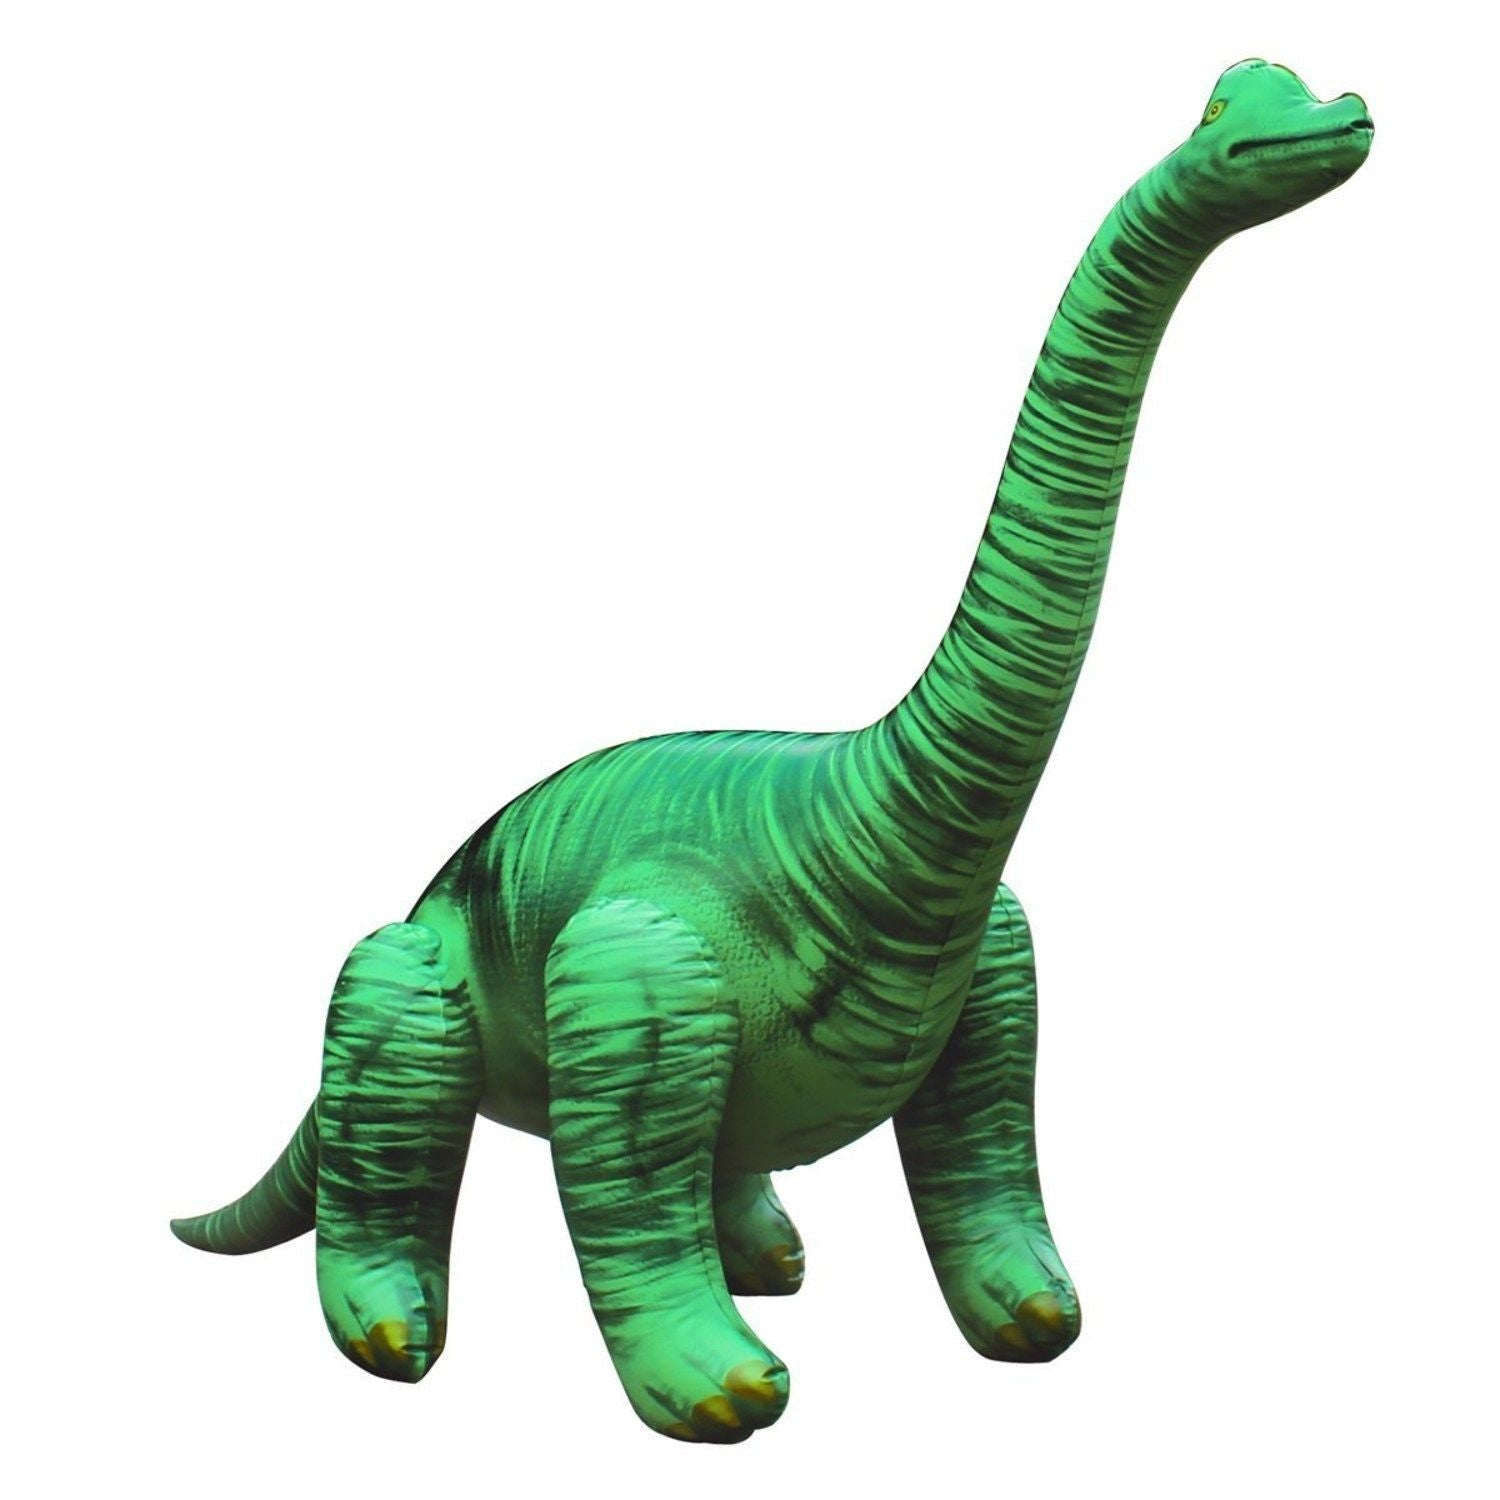 Inflatable Brachiosaurus Dinosaur Model - 4 Foot Long Dino Figure - Off The Wall Toys and Gifts